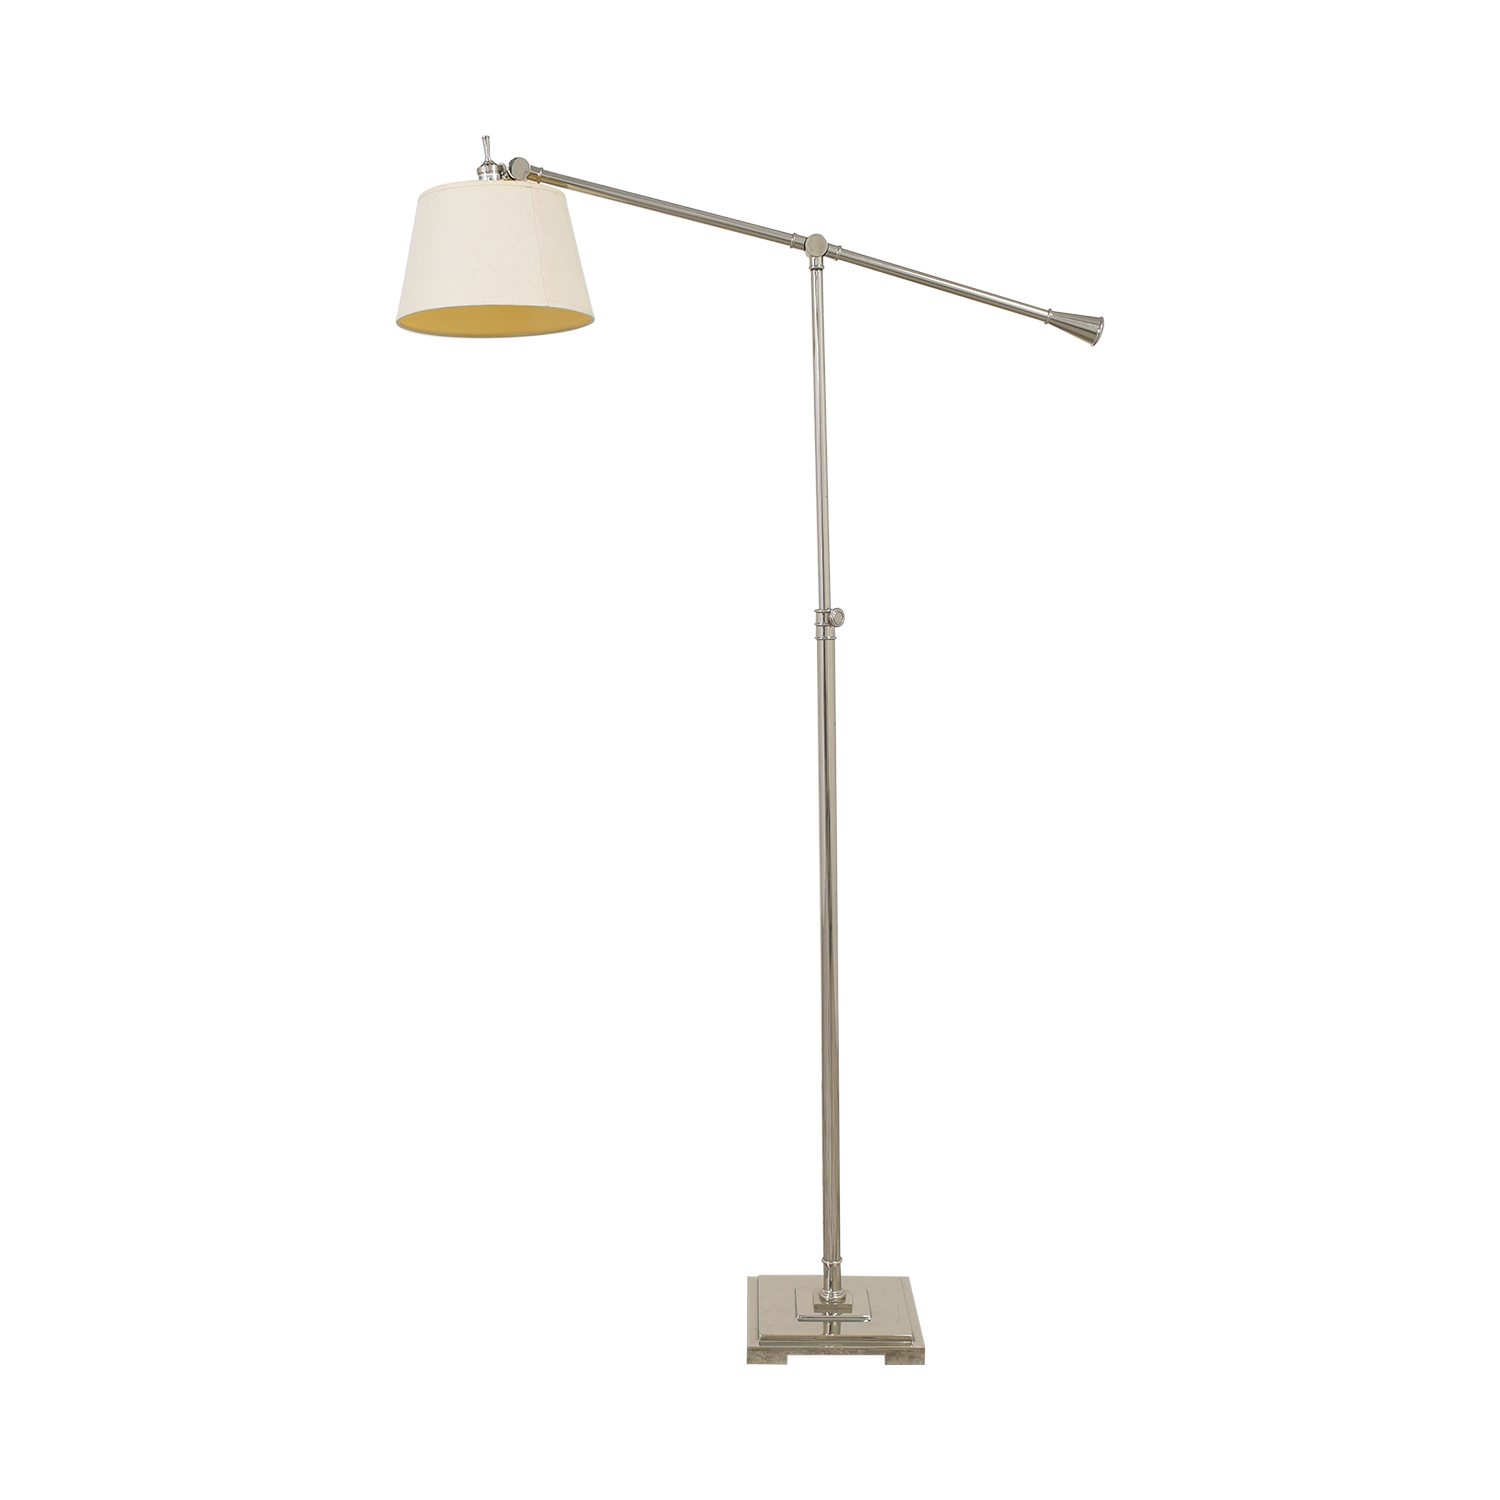 Crate & Barrel Crate & Barrel Adjustable Floor Lamp nj